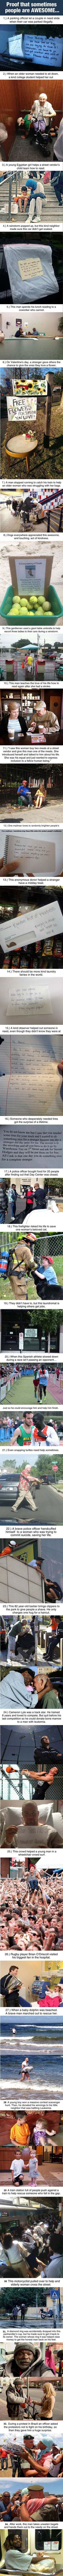 Faith in humanity restored. This is amazing.